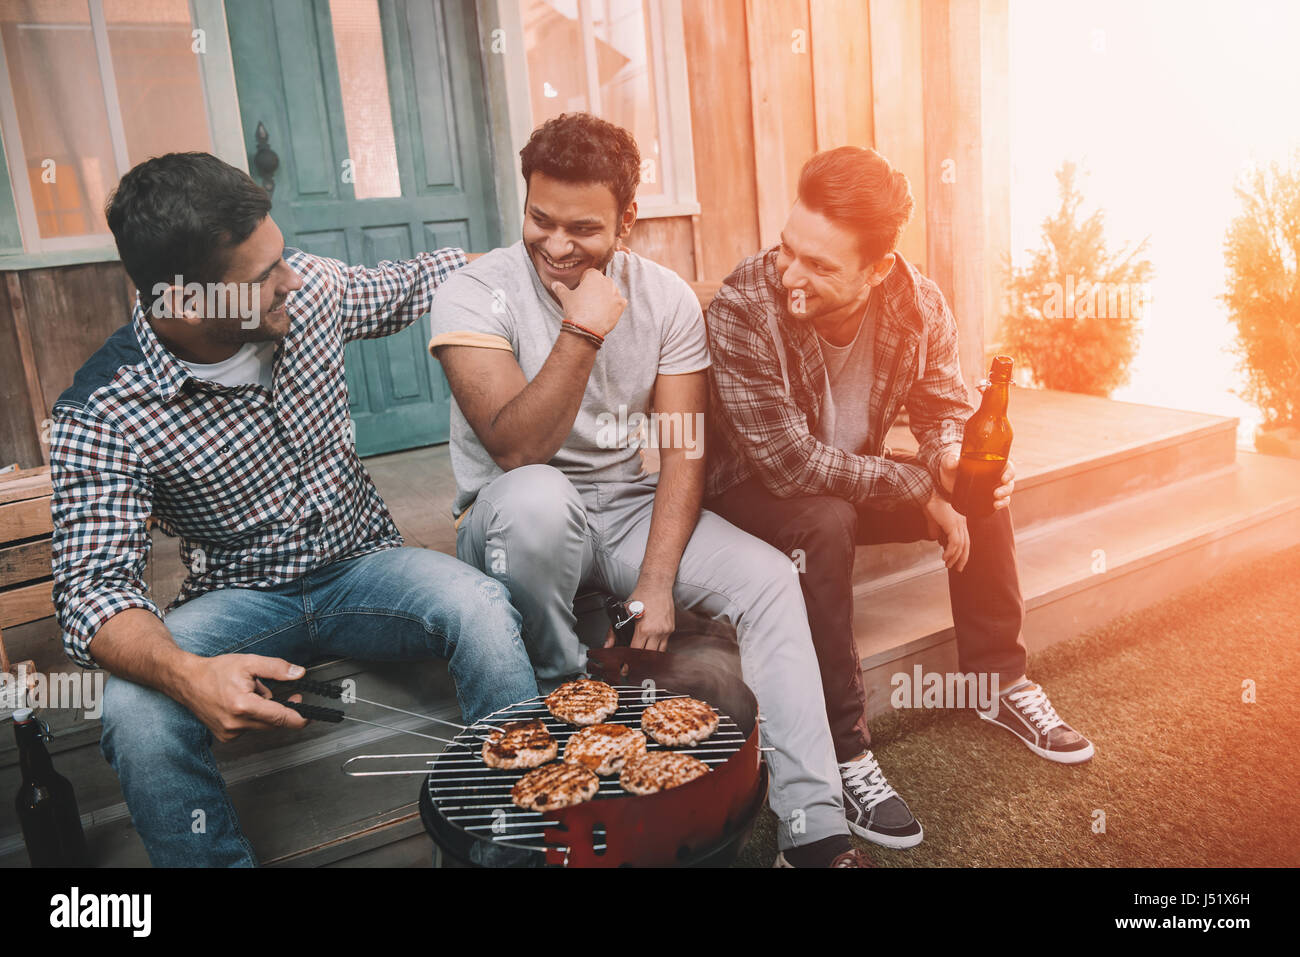 Three young men drinking beer and smiling while sitting on porch and making barbecue - Stock Image